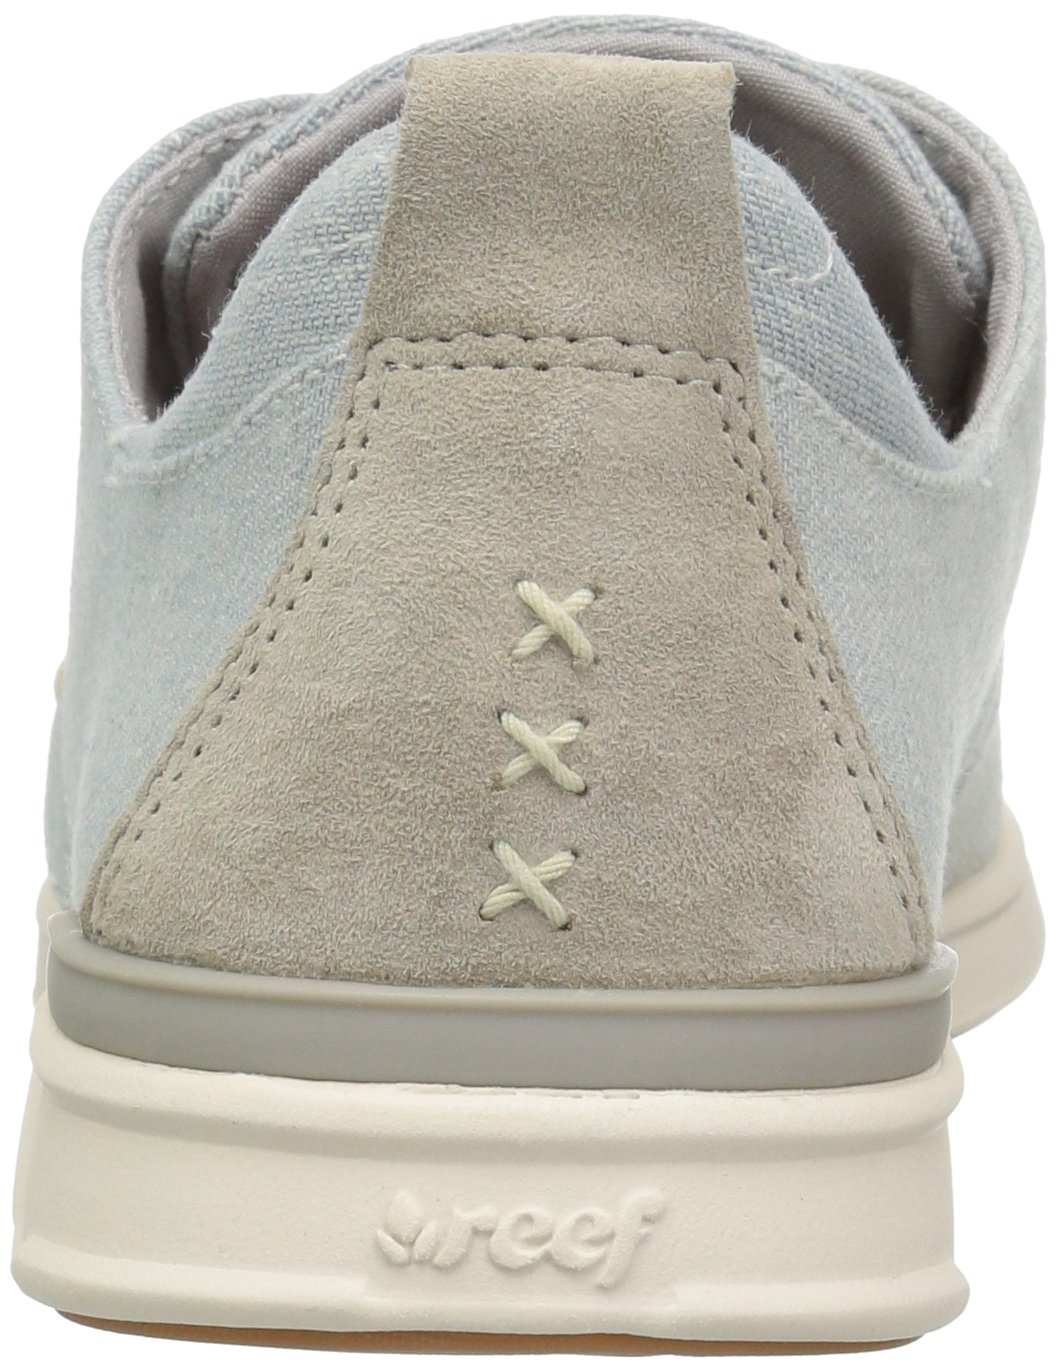 Reef Women's Rover B01NBIKYHK Low TX Fashion Sneaker B01NBIKYHK Rover 9 B(M) US|Icy Blue 6e0886